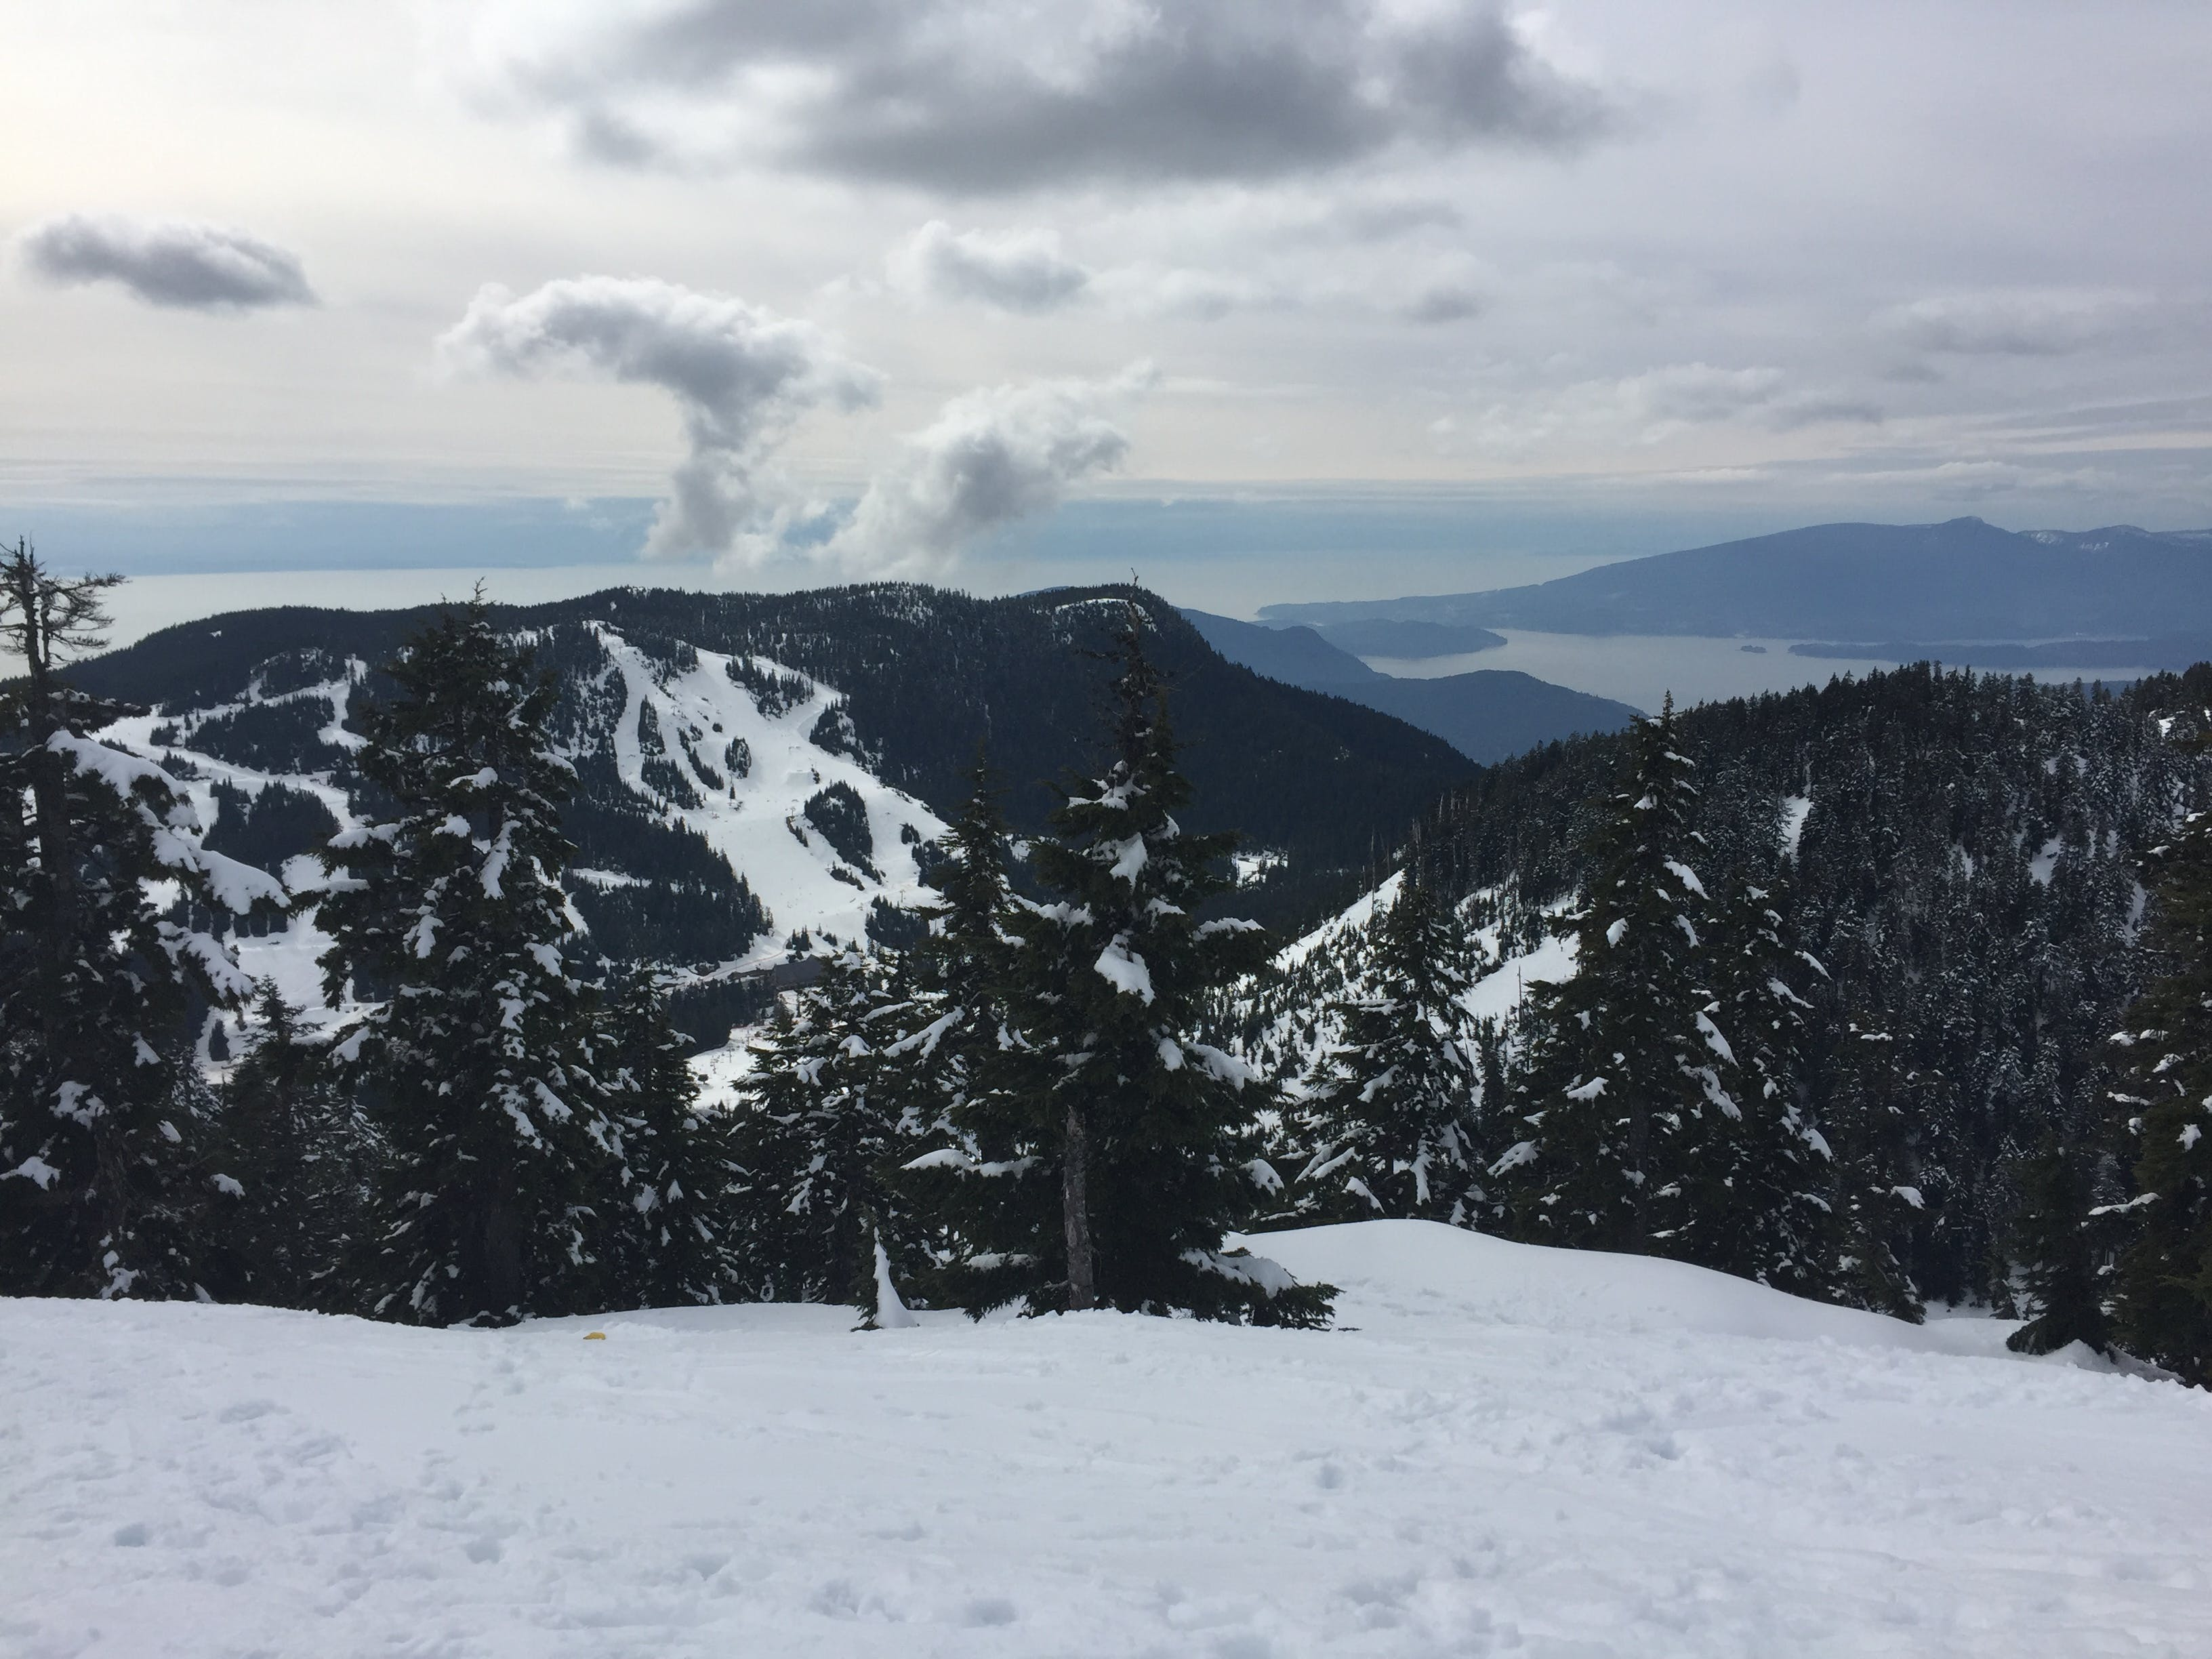 High Altitude View of Snowy Mountain during Daytime